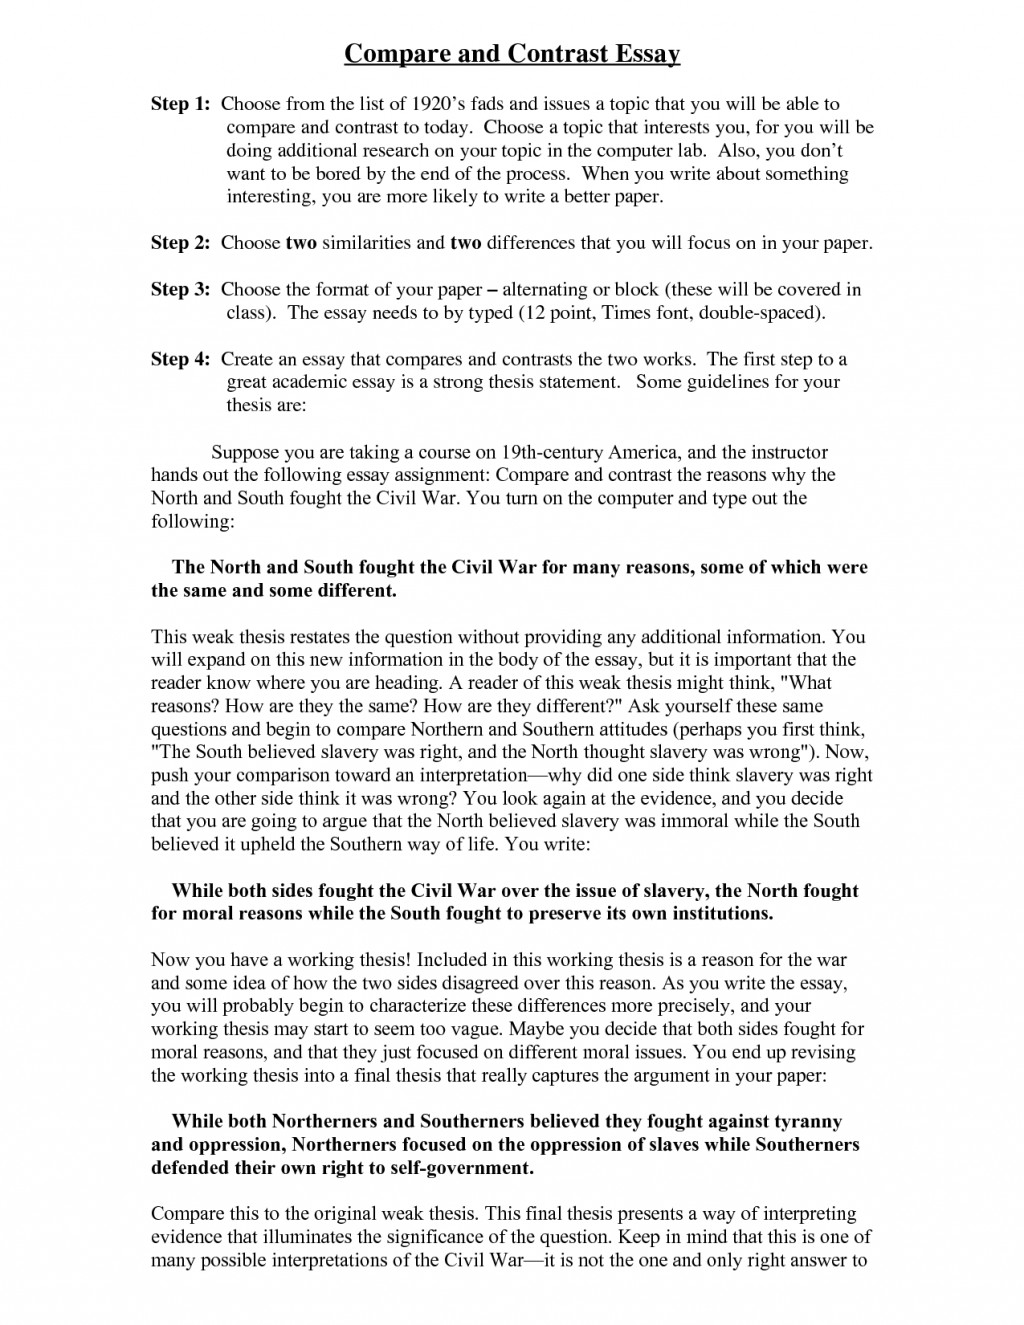 002 Pekhgfly8d Compare And Contrast Essay Formidable A Apush Thesis Topics 2017 Large